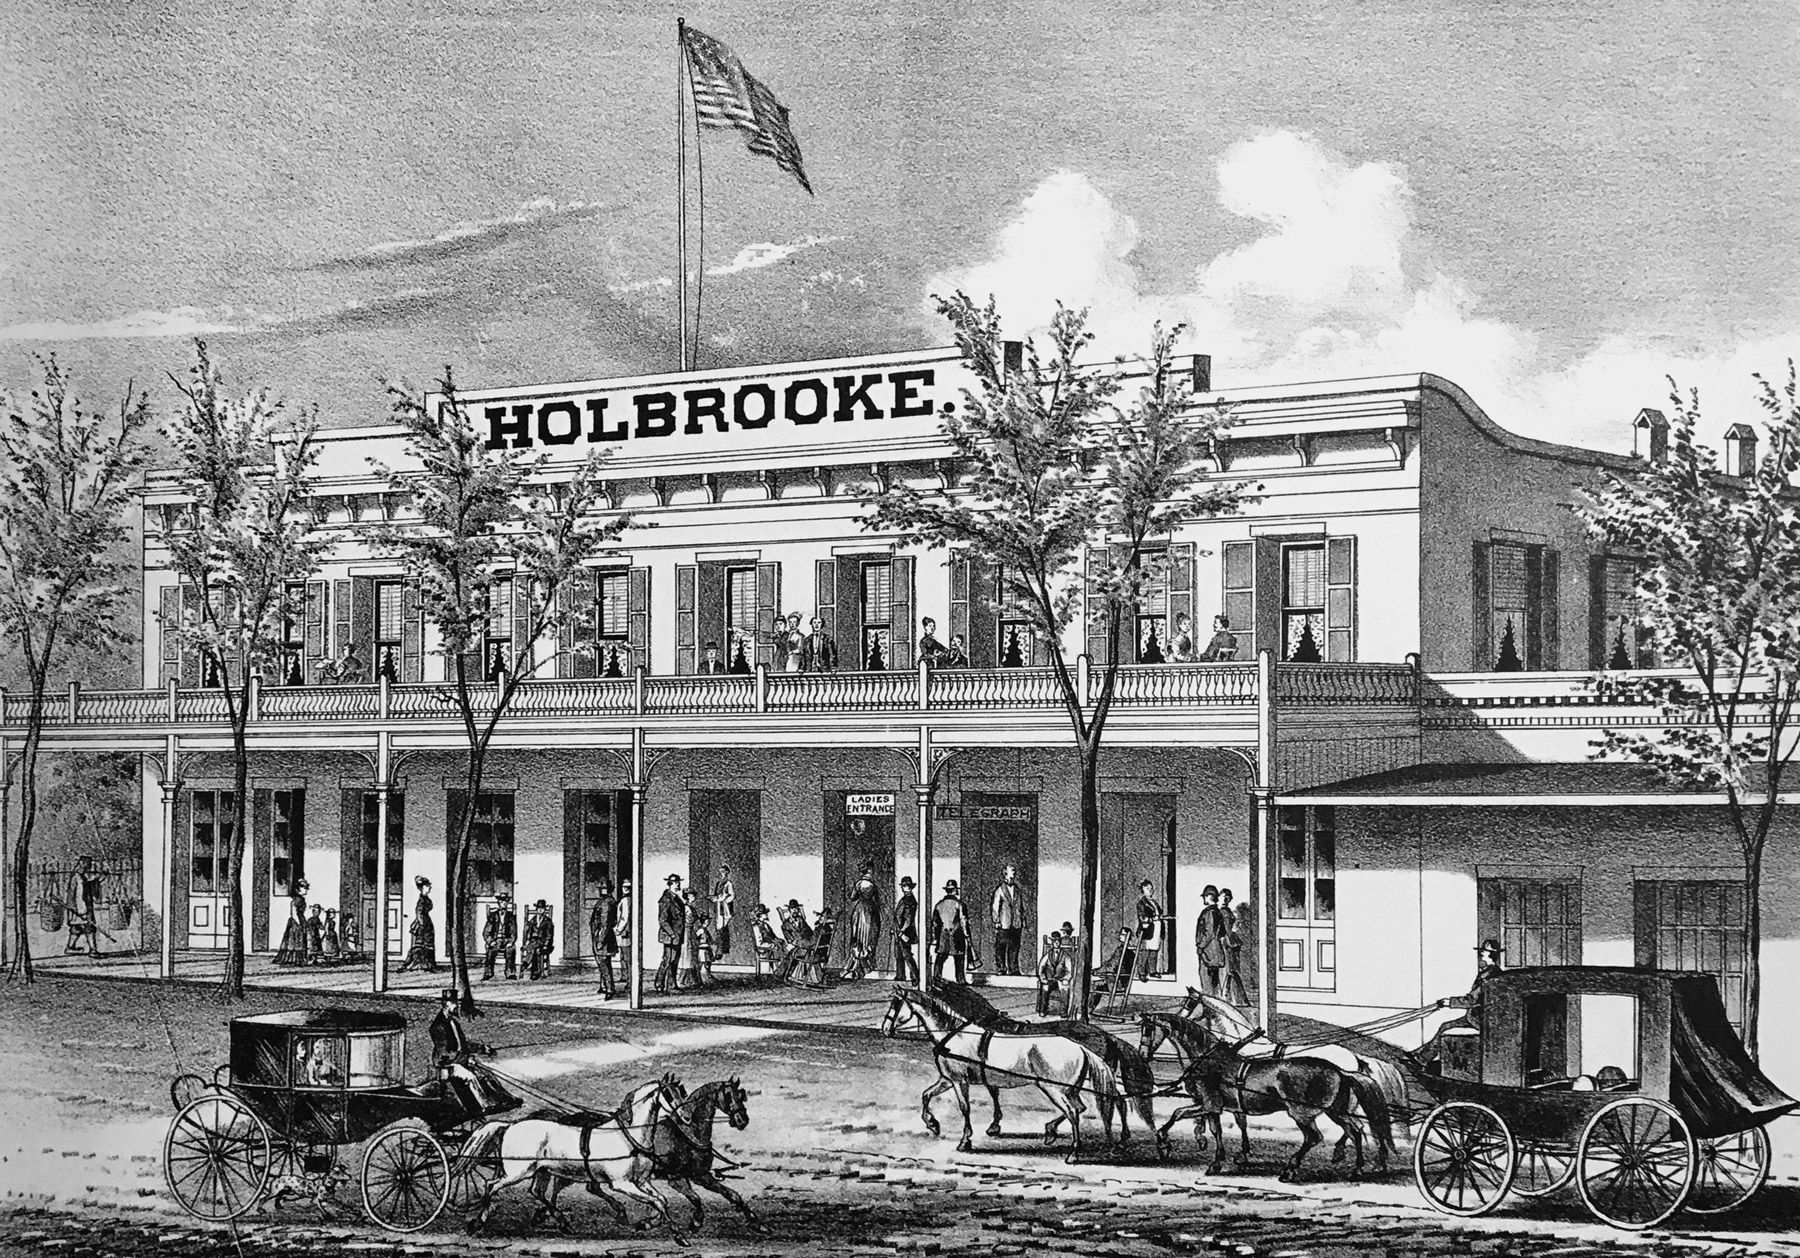 Holbrooke Illustration 1880s